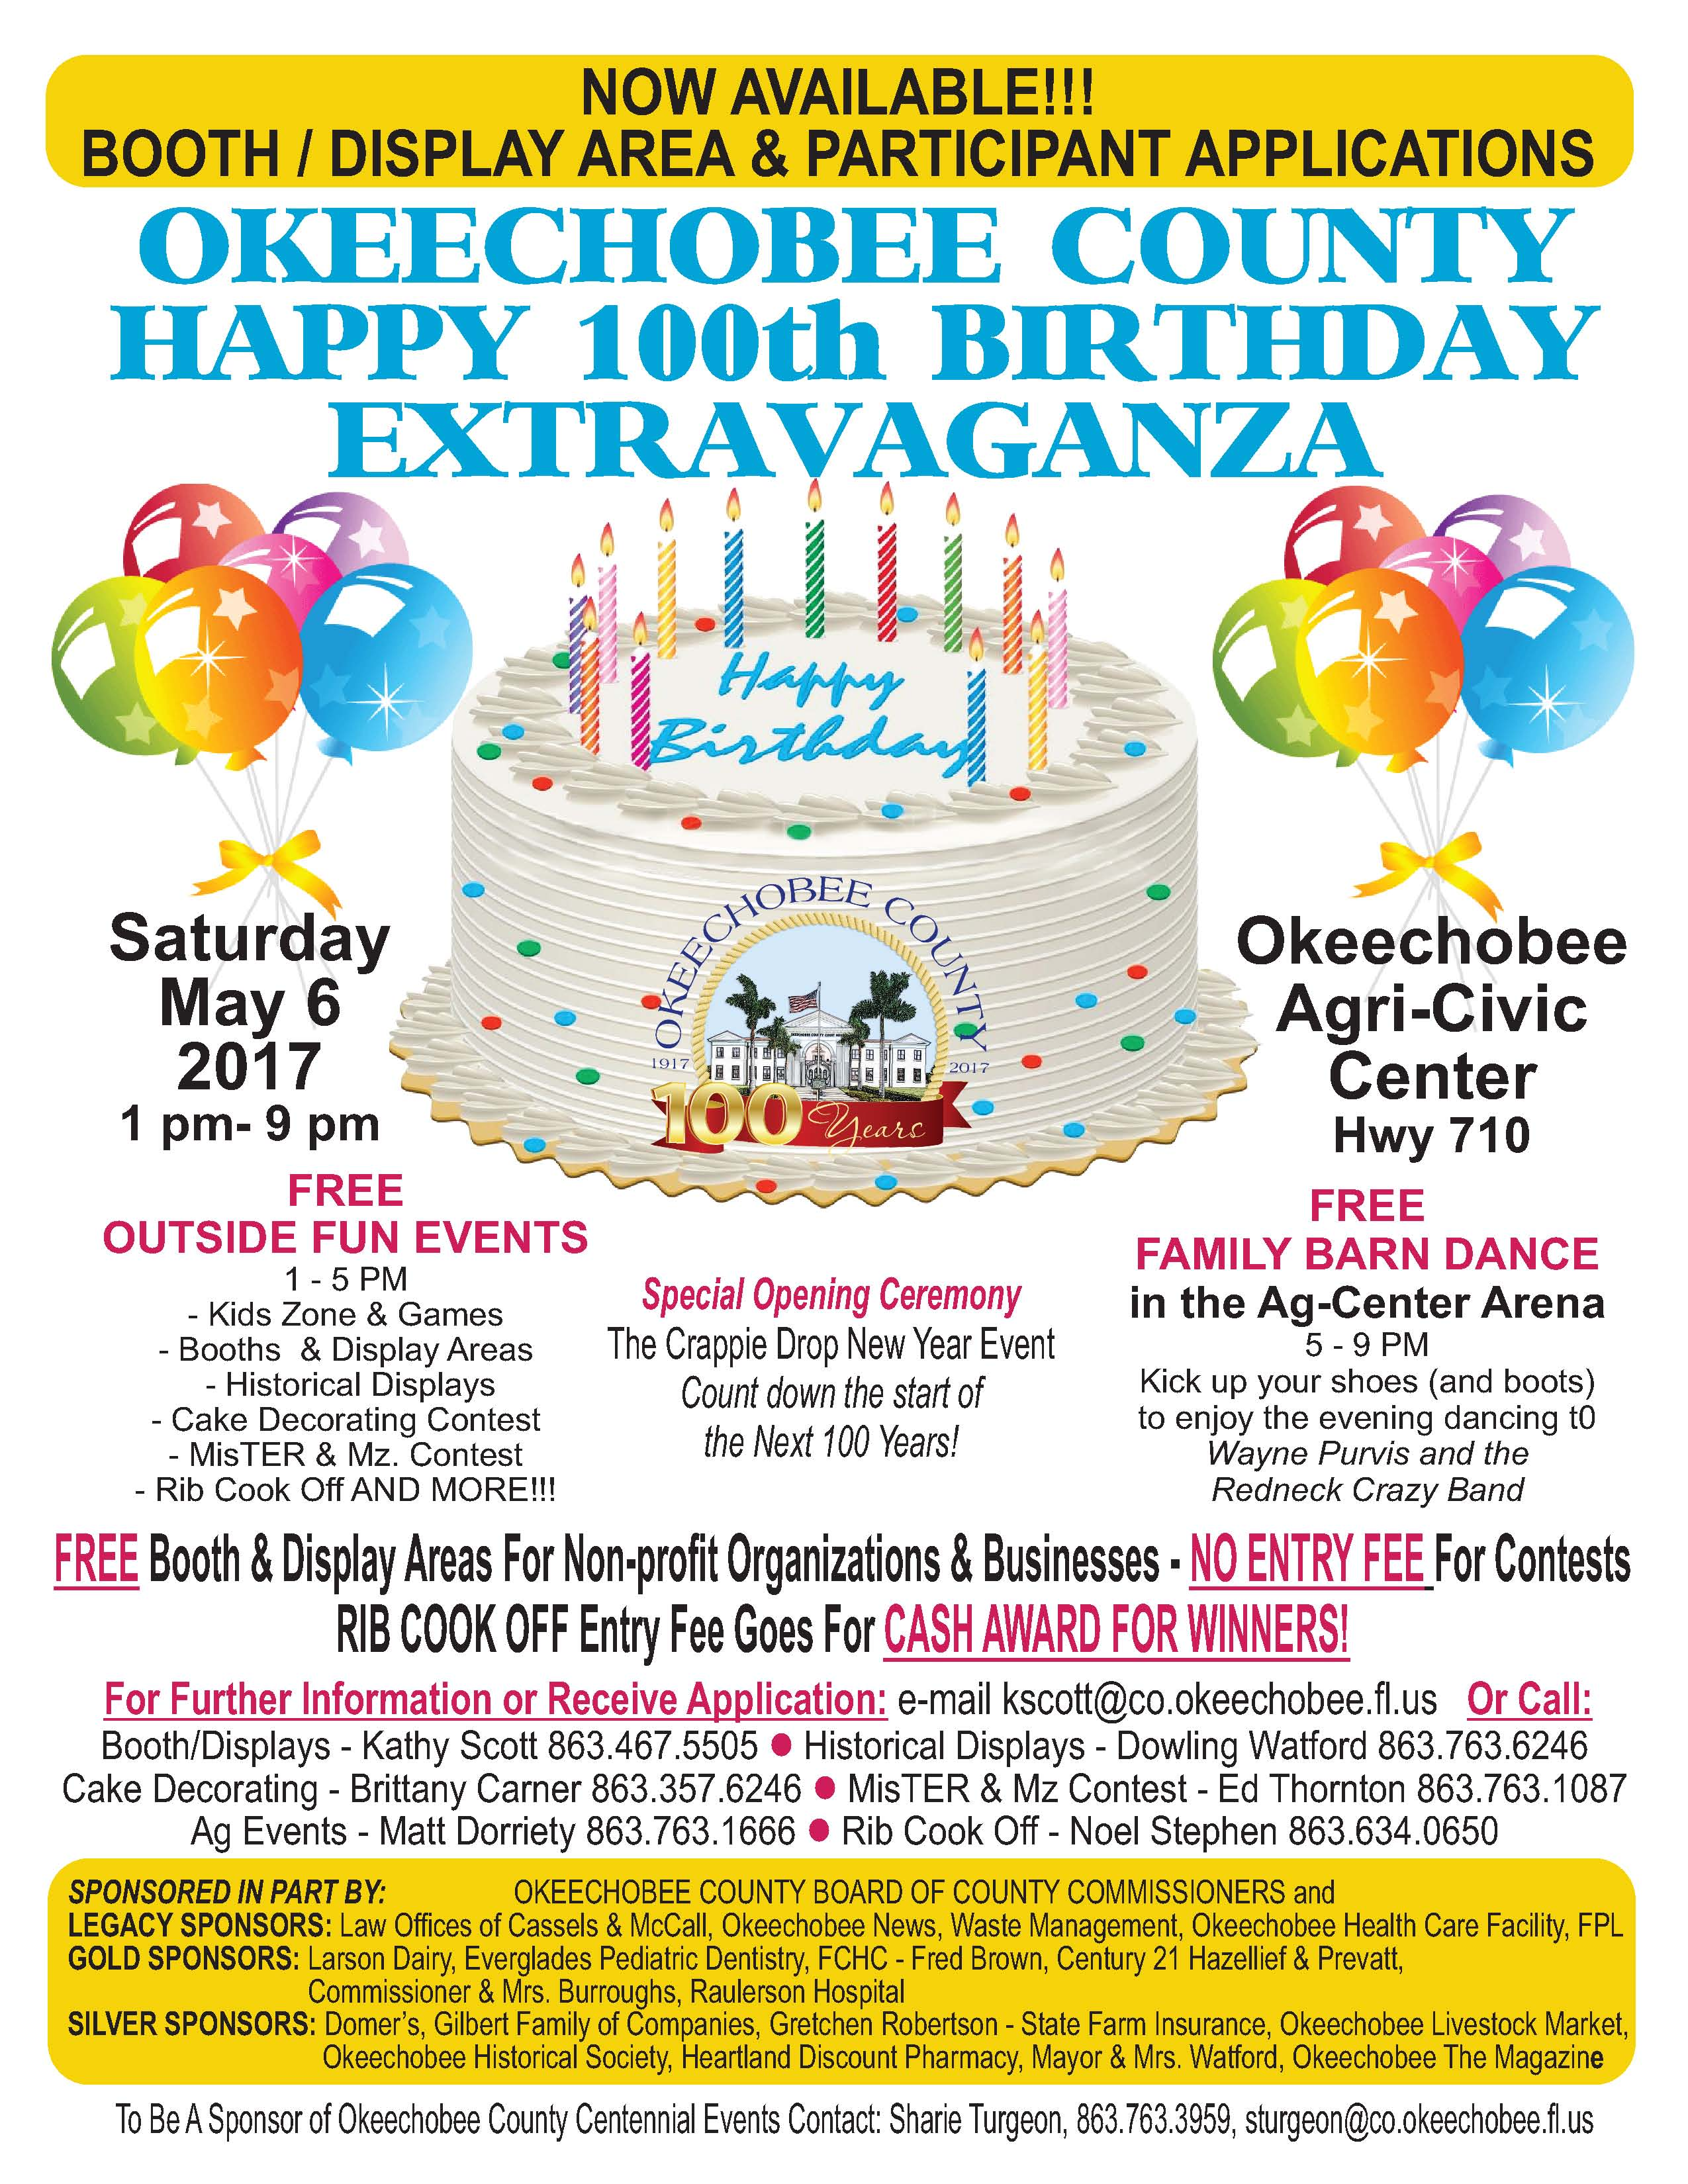 Birthday Application Flyer 2-8-17 (3).jpg